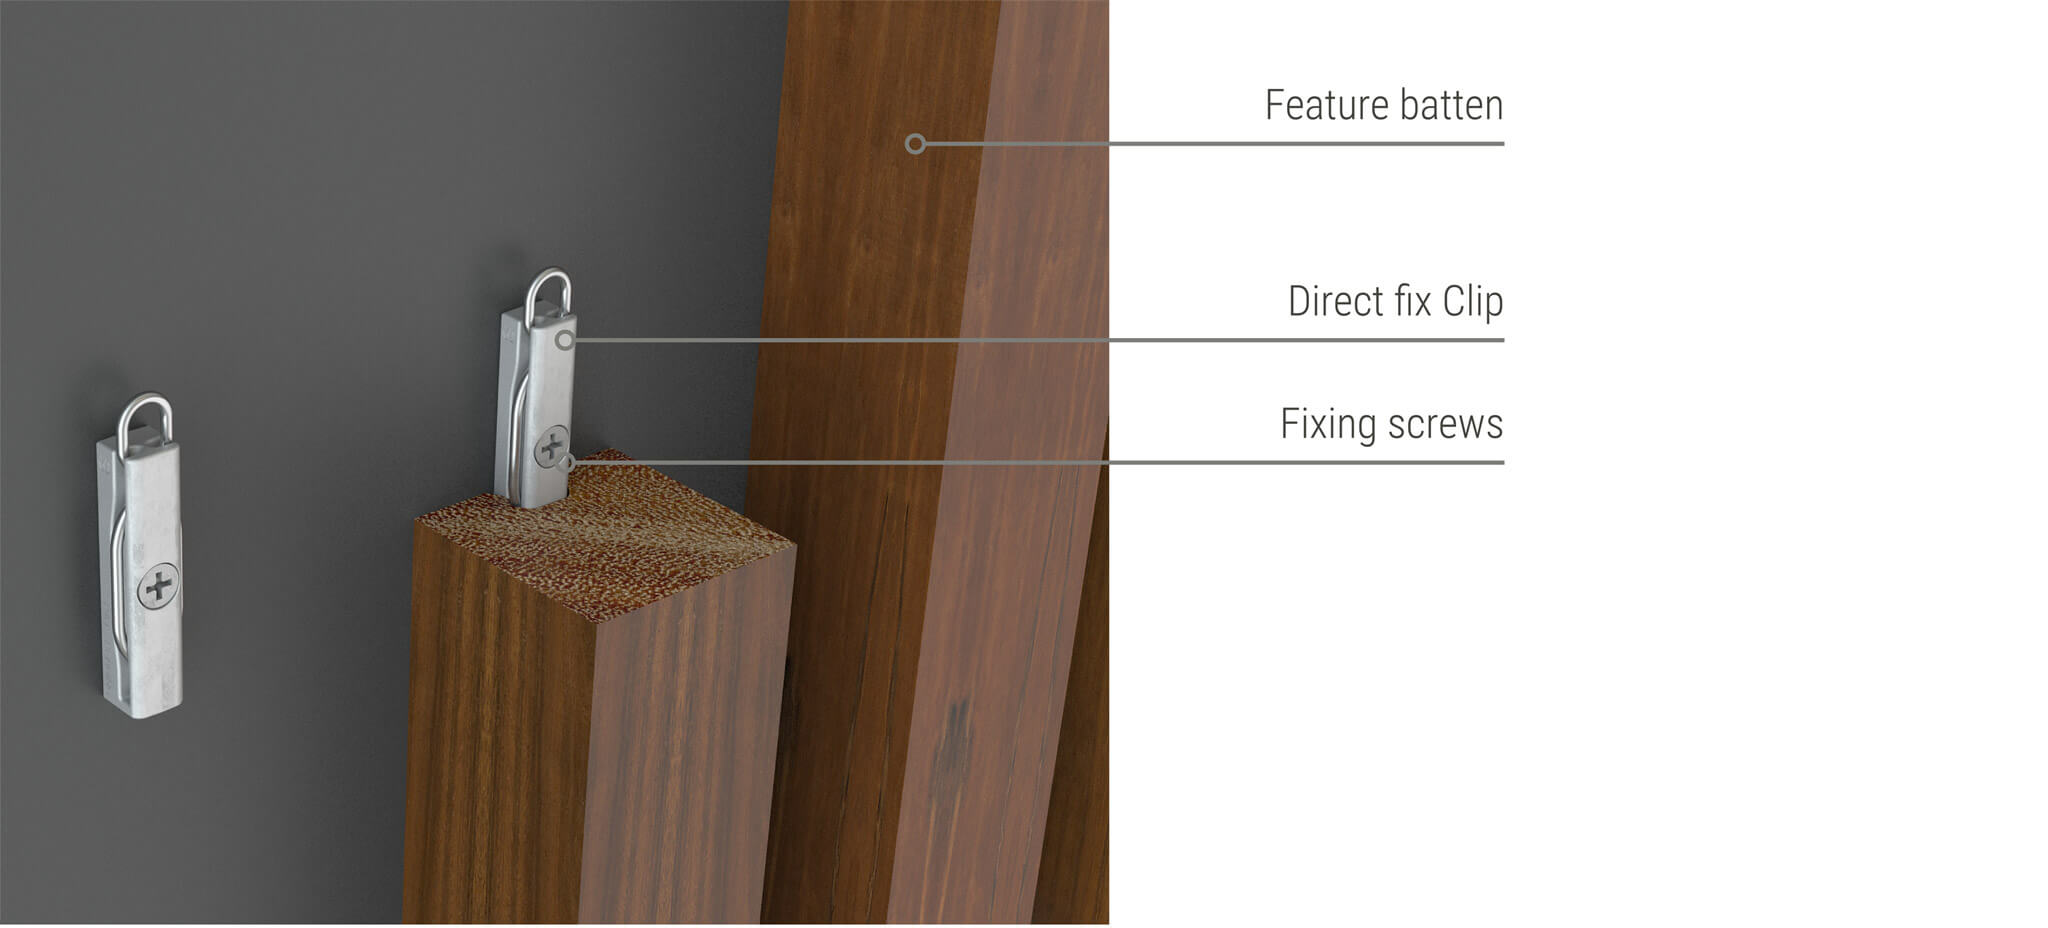 Sculptform-click-on-battens-direct-fix-clip